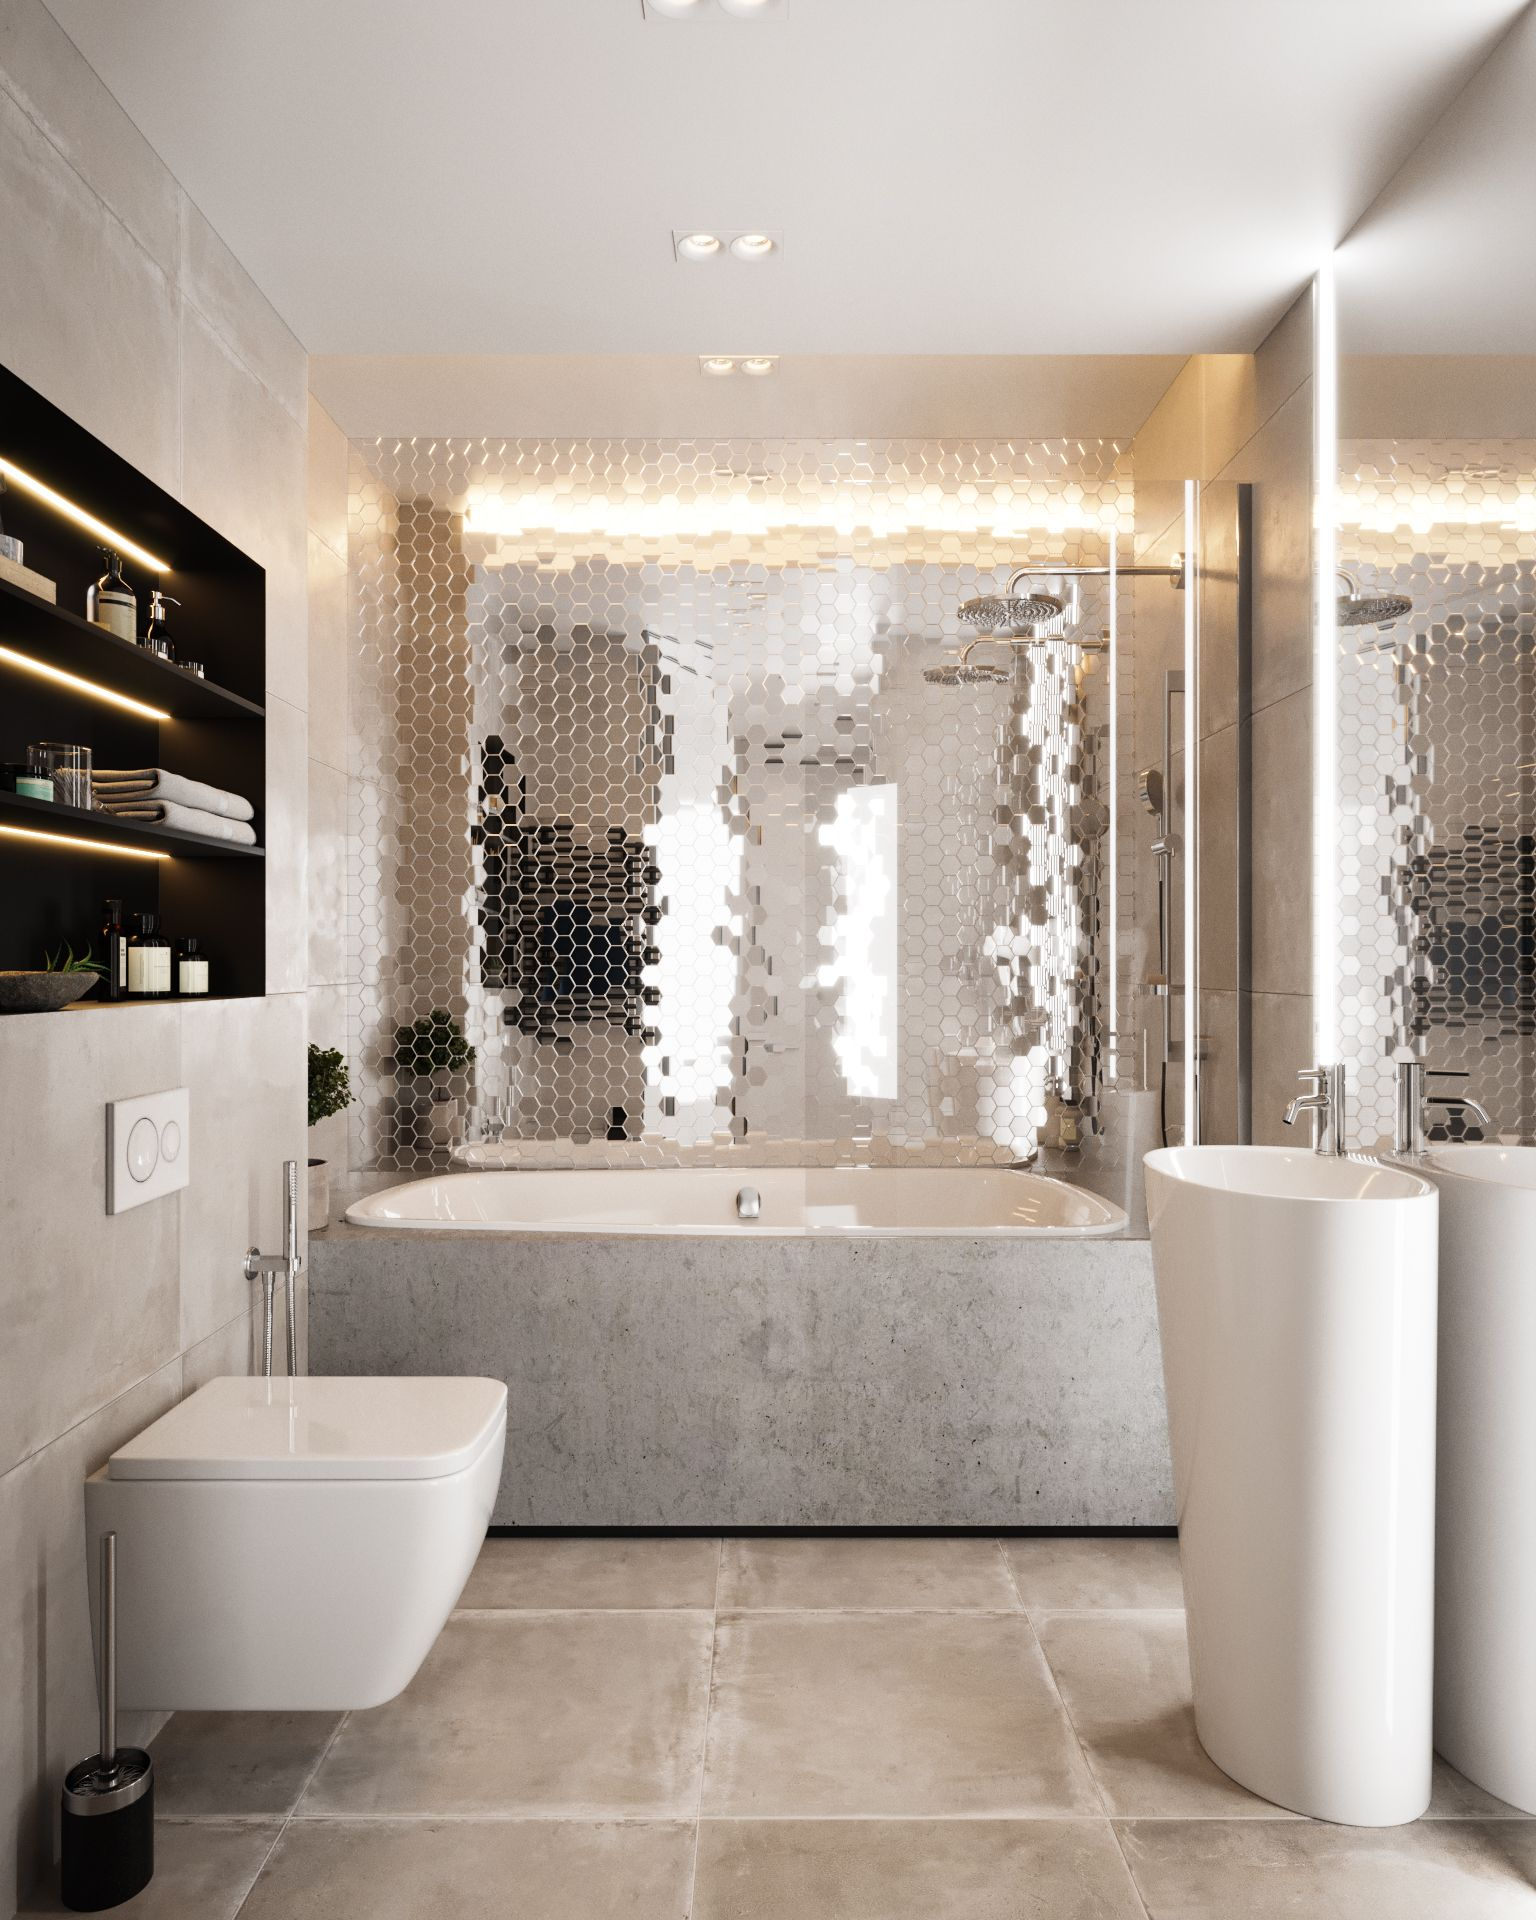 If You Want To Turn Bathroom Into Glamour Room You Need Mirror Mosaic Mirrored Tiles Are The Mediu Bathroom Design Bold Bathroom Tile Master Bathroom Design